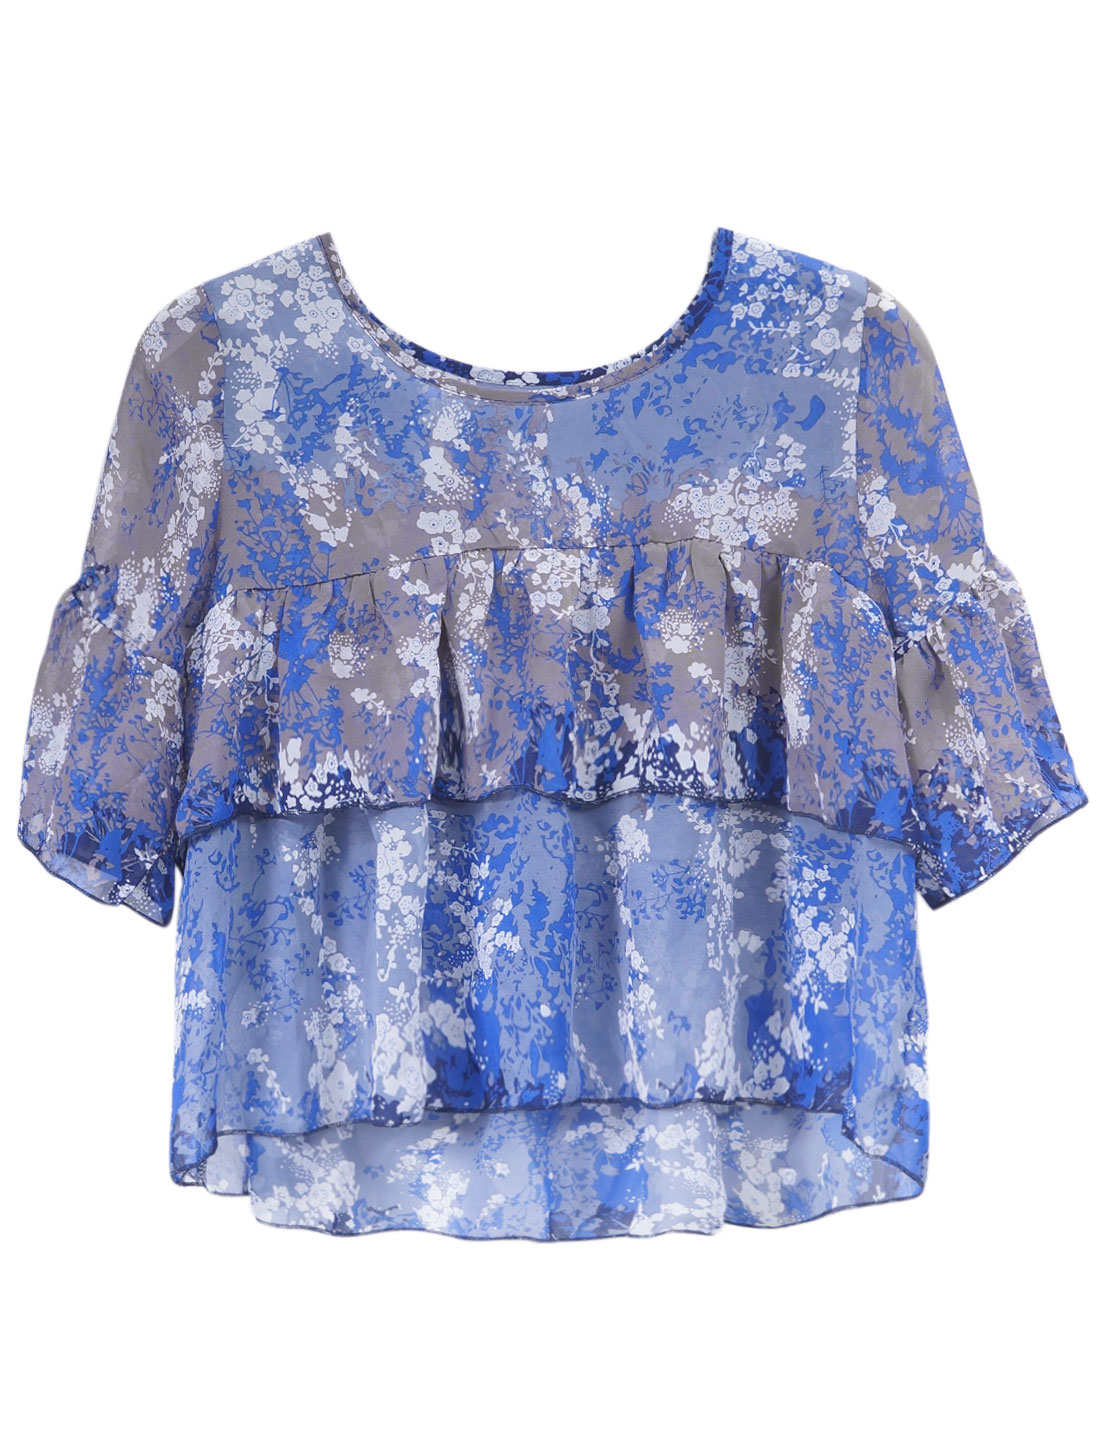 Lady 3/4 Sleeve Floral Prints Semi Sheer Tiered Flouncing Blouse Blue S